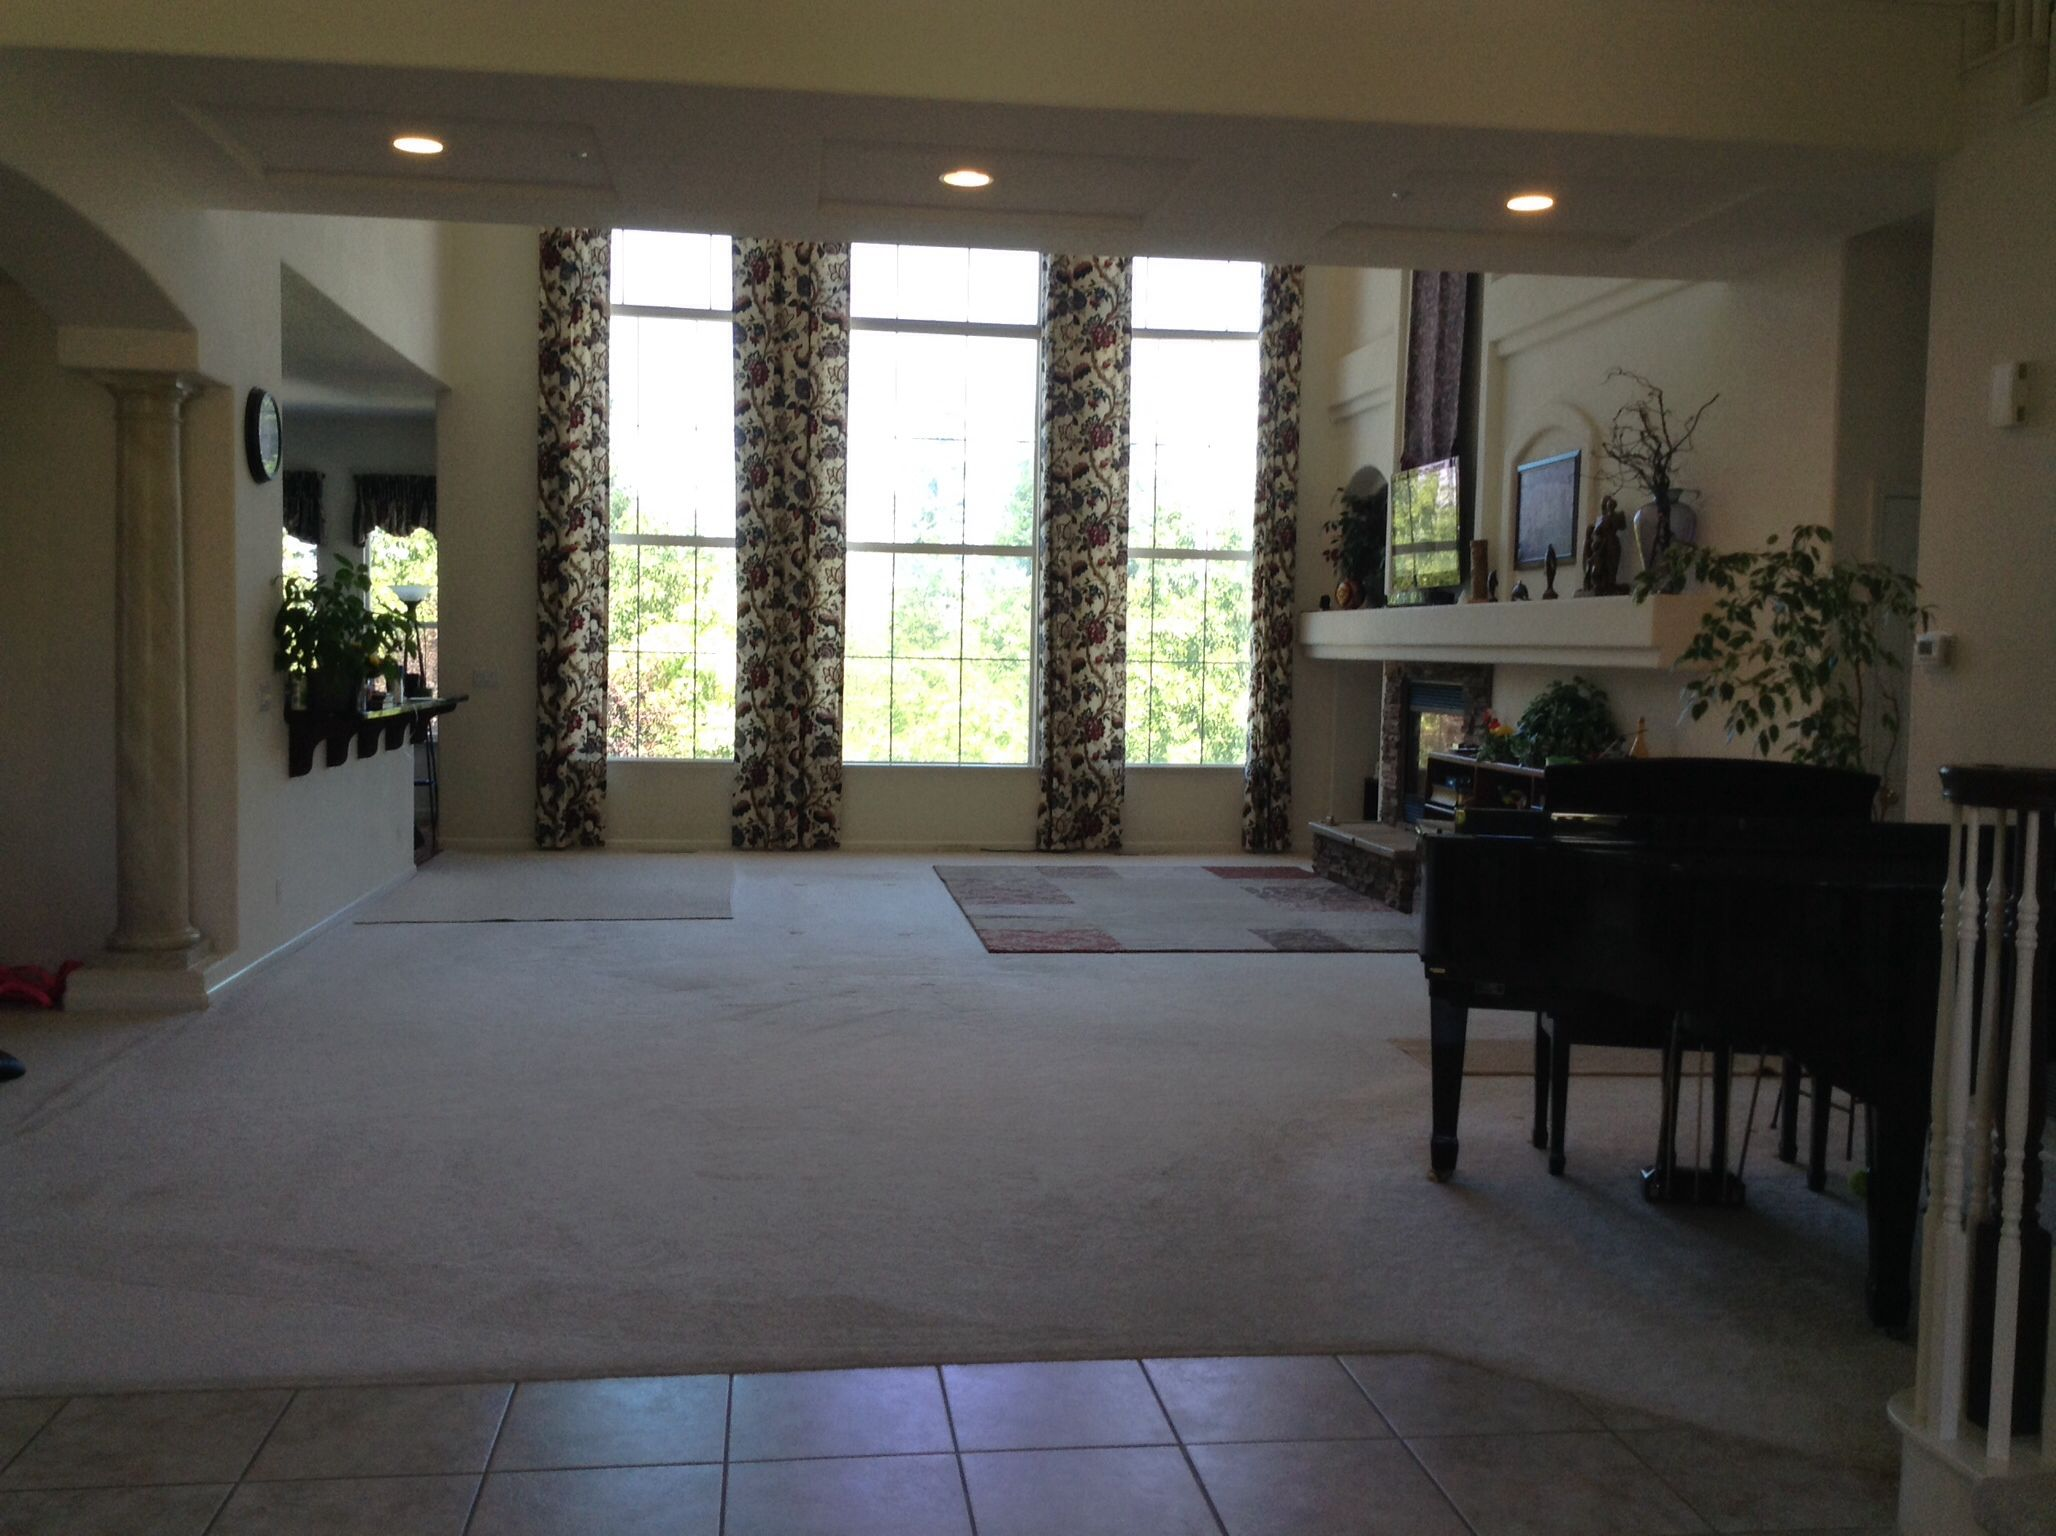 Family room view from entryway